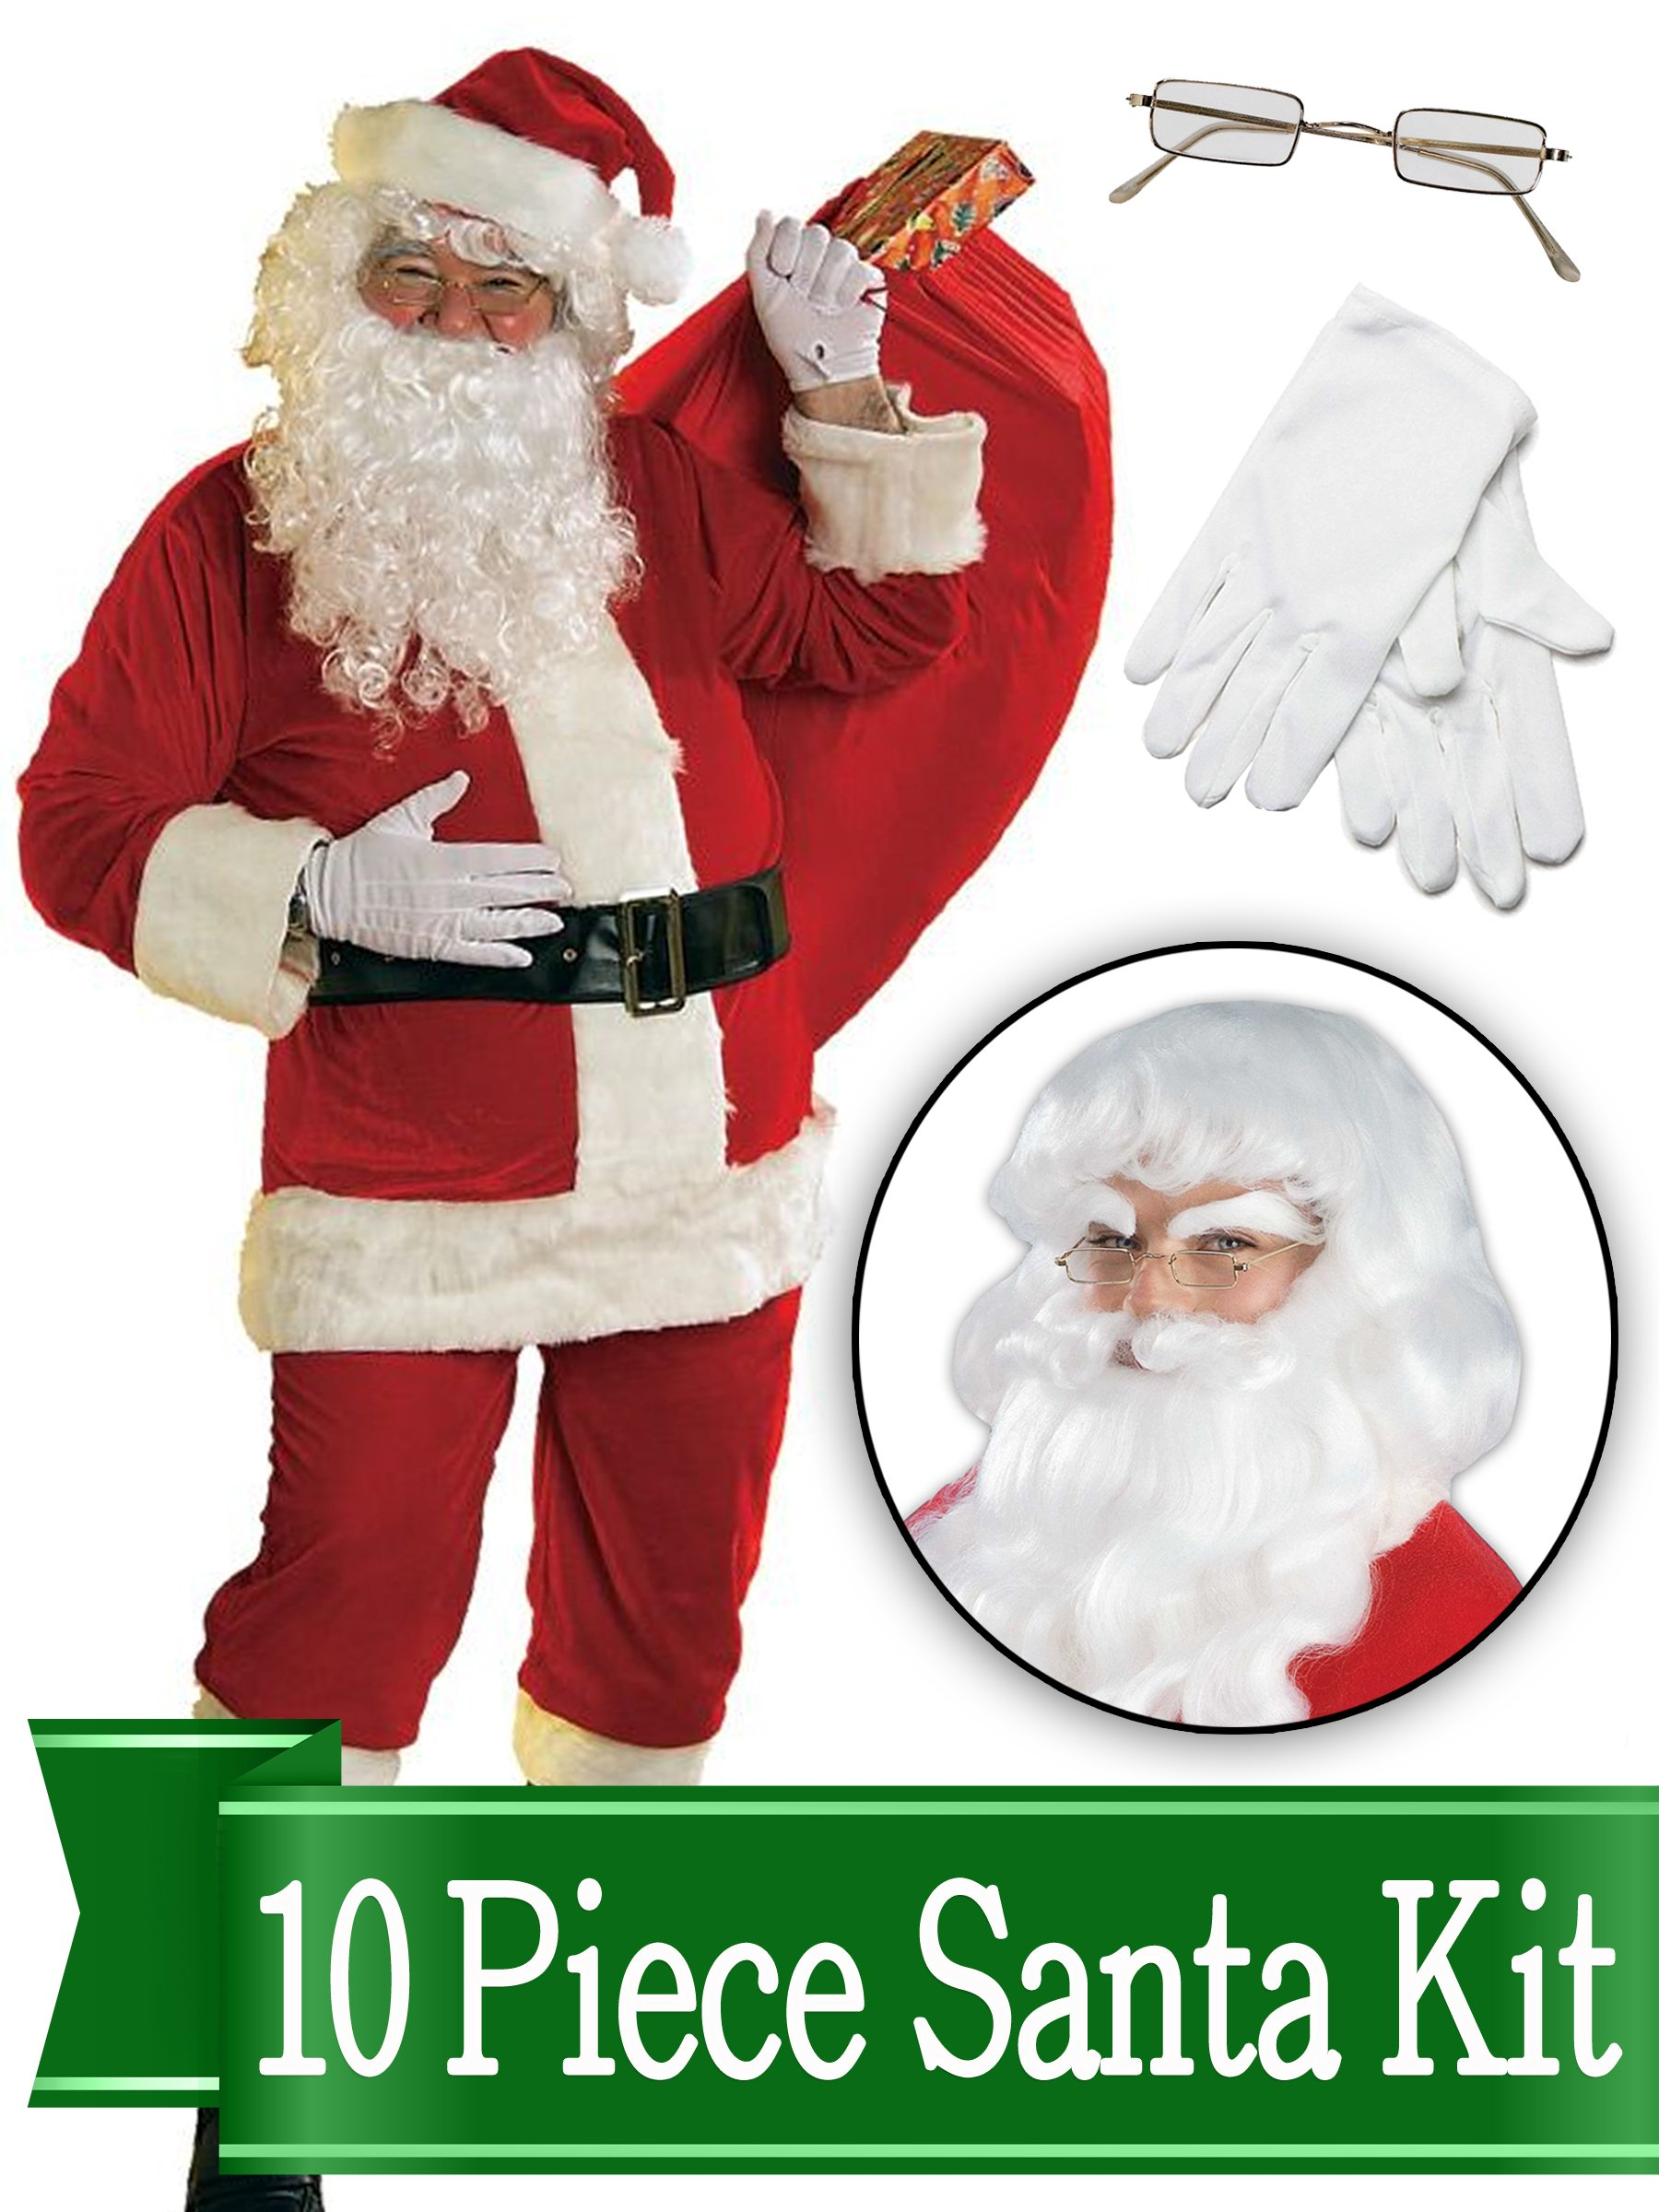 BirthdayExpress Santa Suit Complete Kit Red Ultra Velvet Deluxe Complete 10 Piece Kit - Santa Costume Outfit by BirthdayExpress